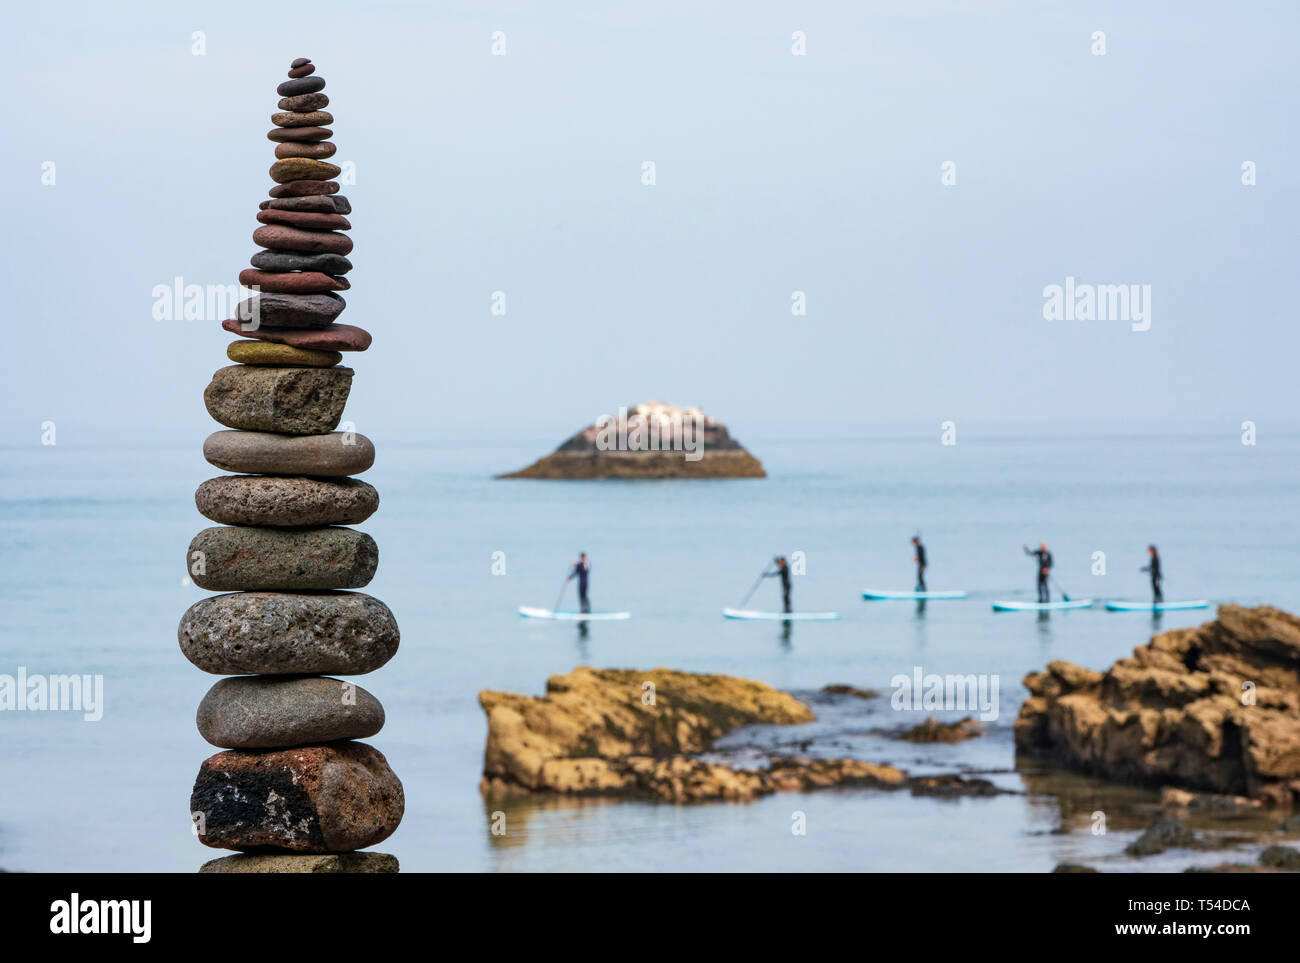 Dunbar, Scotland, UK. 20th Apr, 2019. Paddle boarders and stone stack at Eye Cave beach in Dunbar during opening day of the European Stone Stacking Championship 2019. Credit: Iain Masterton/Alamy Live News - Stock Image